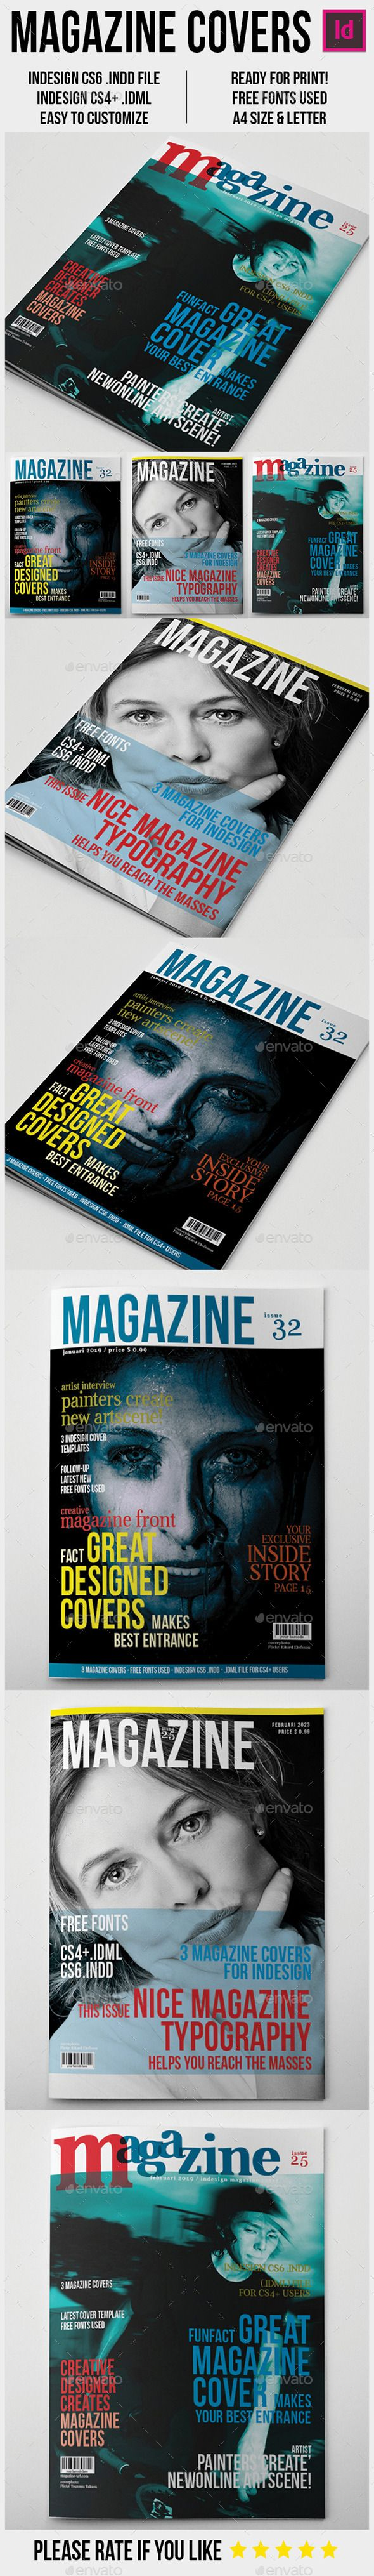 Magazine Covers Template A4 By Sectionsign Magazine Covers A4 Size